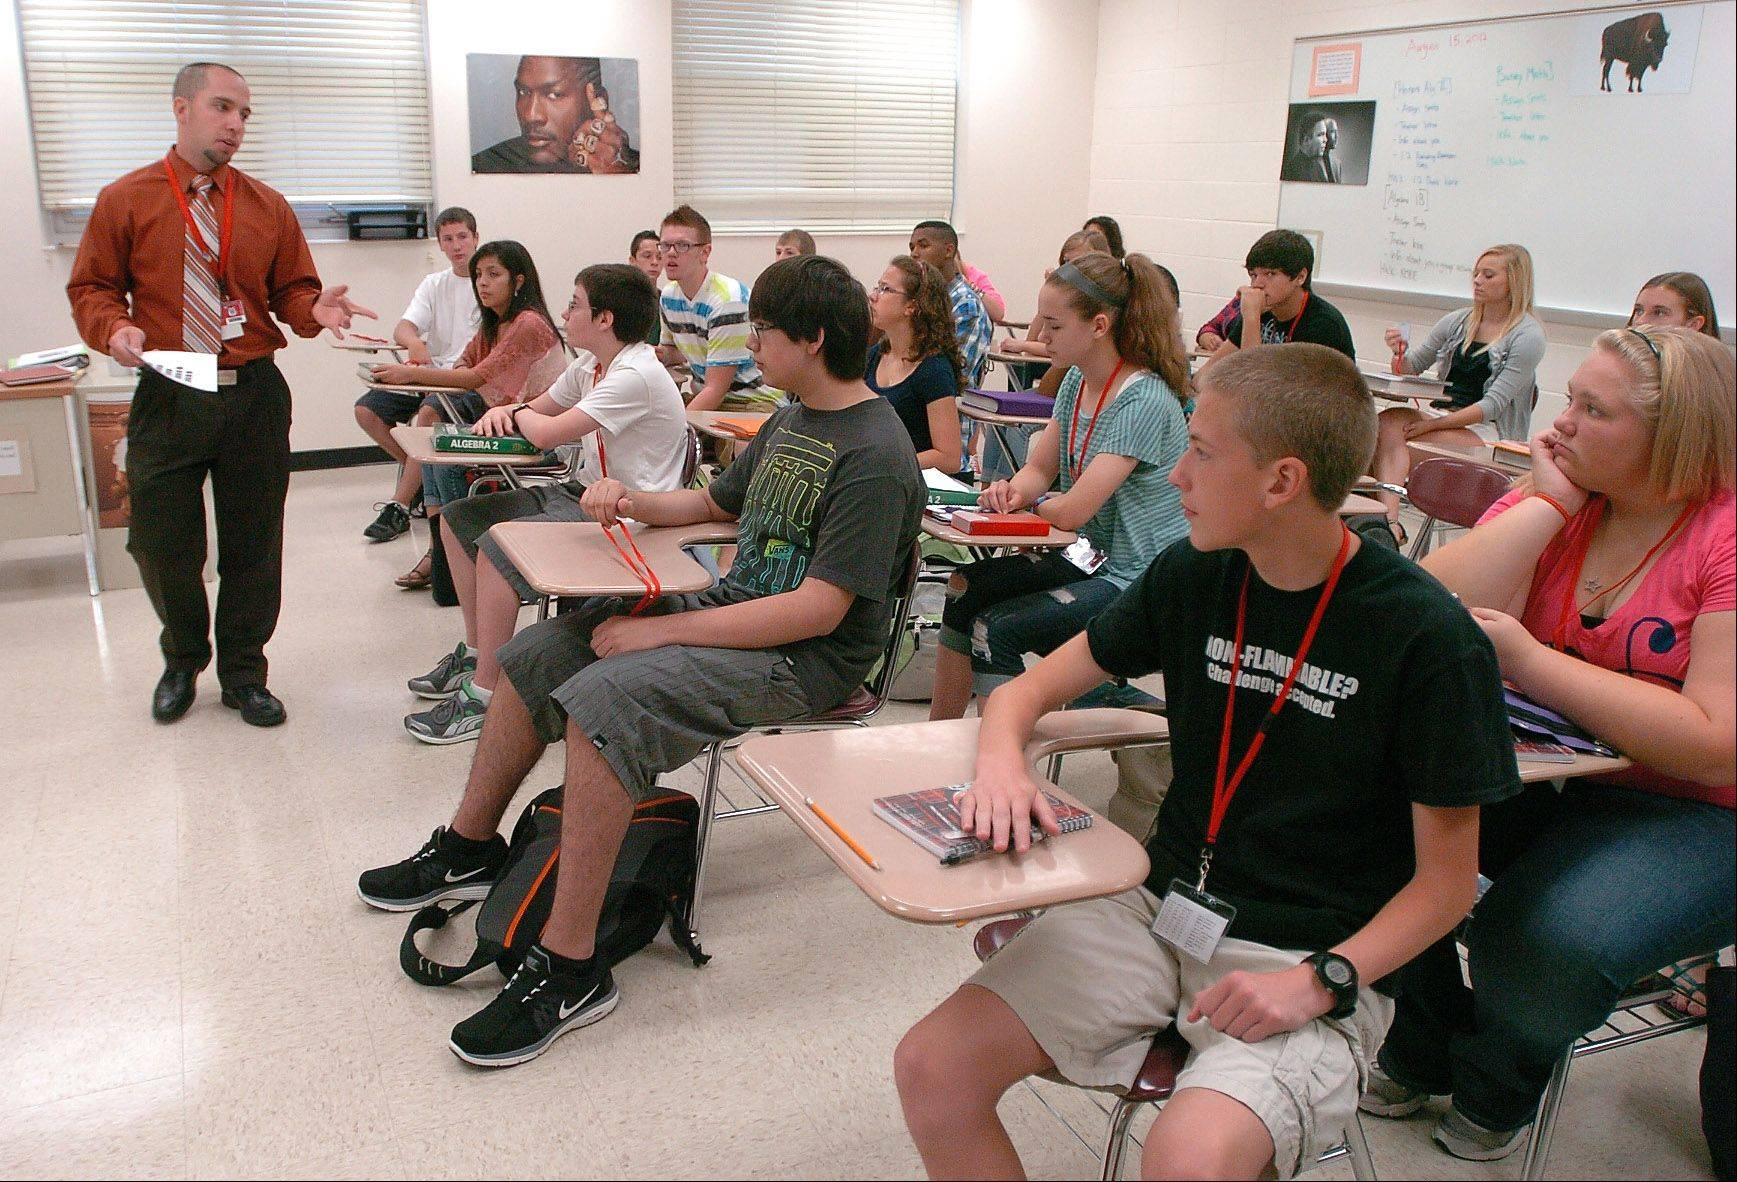 Mike Werner teaching his Honors Algebra II class Wednesday morning at Grant High School in Fox Lake.